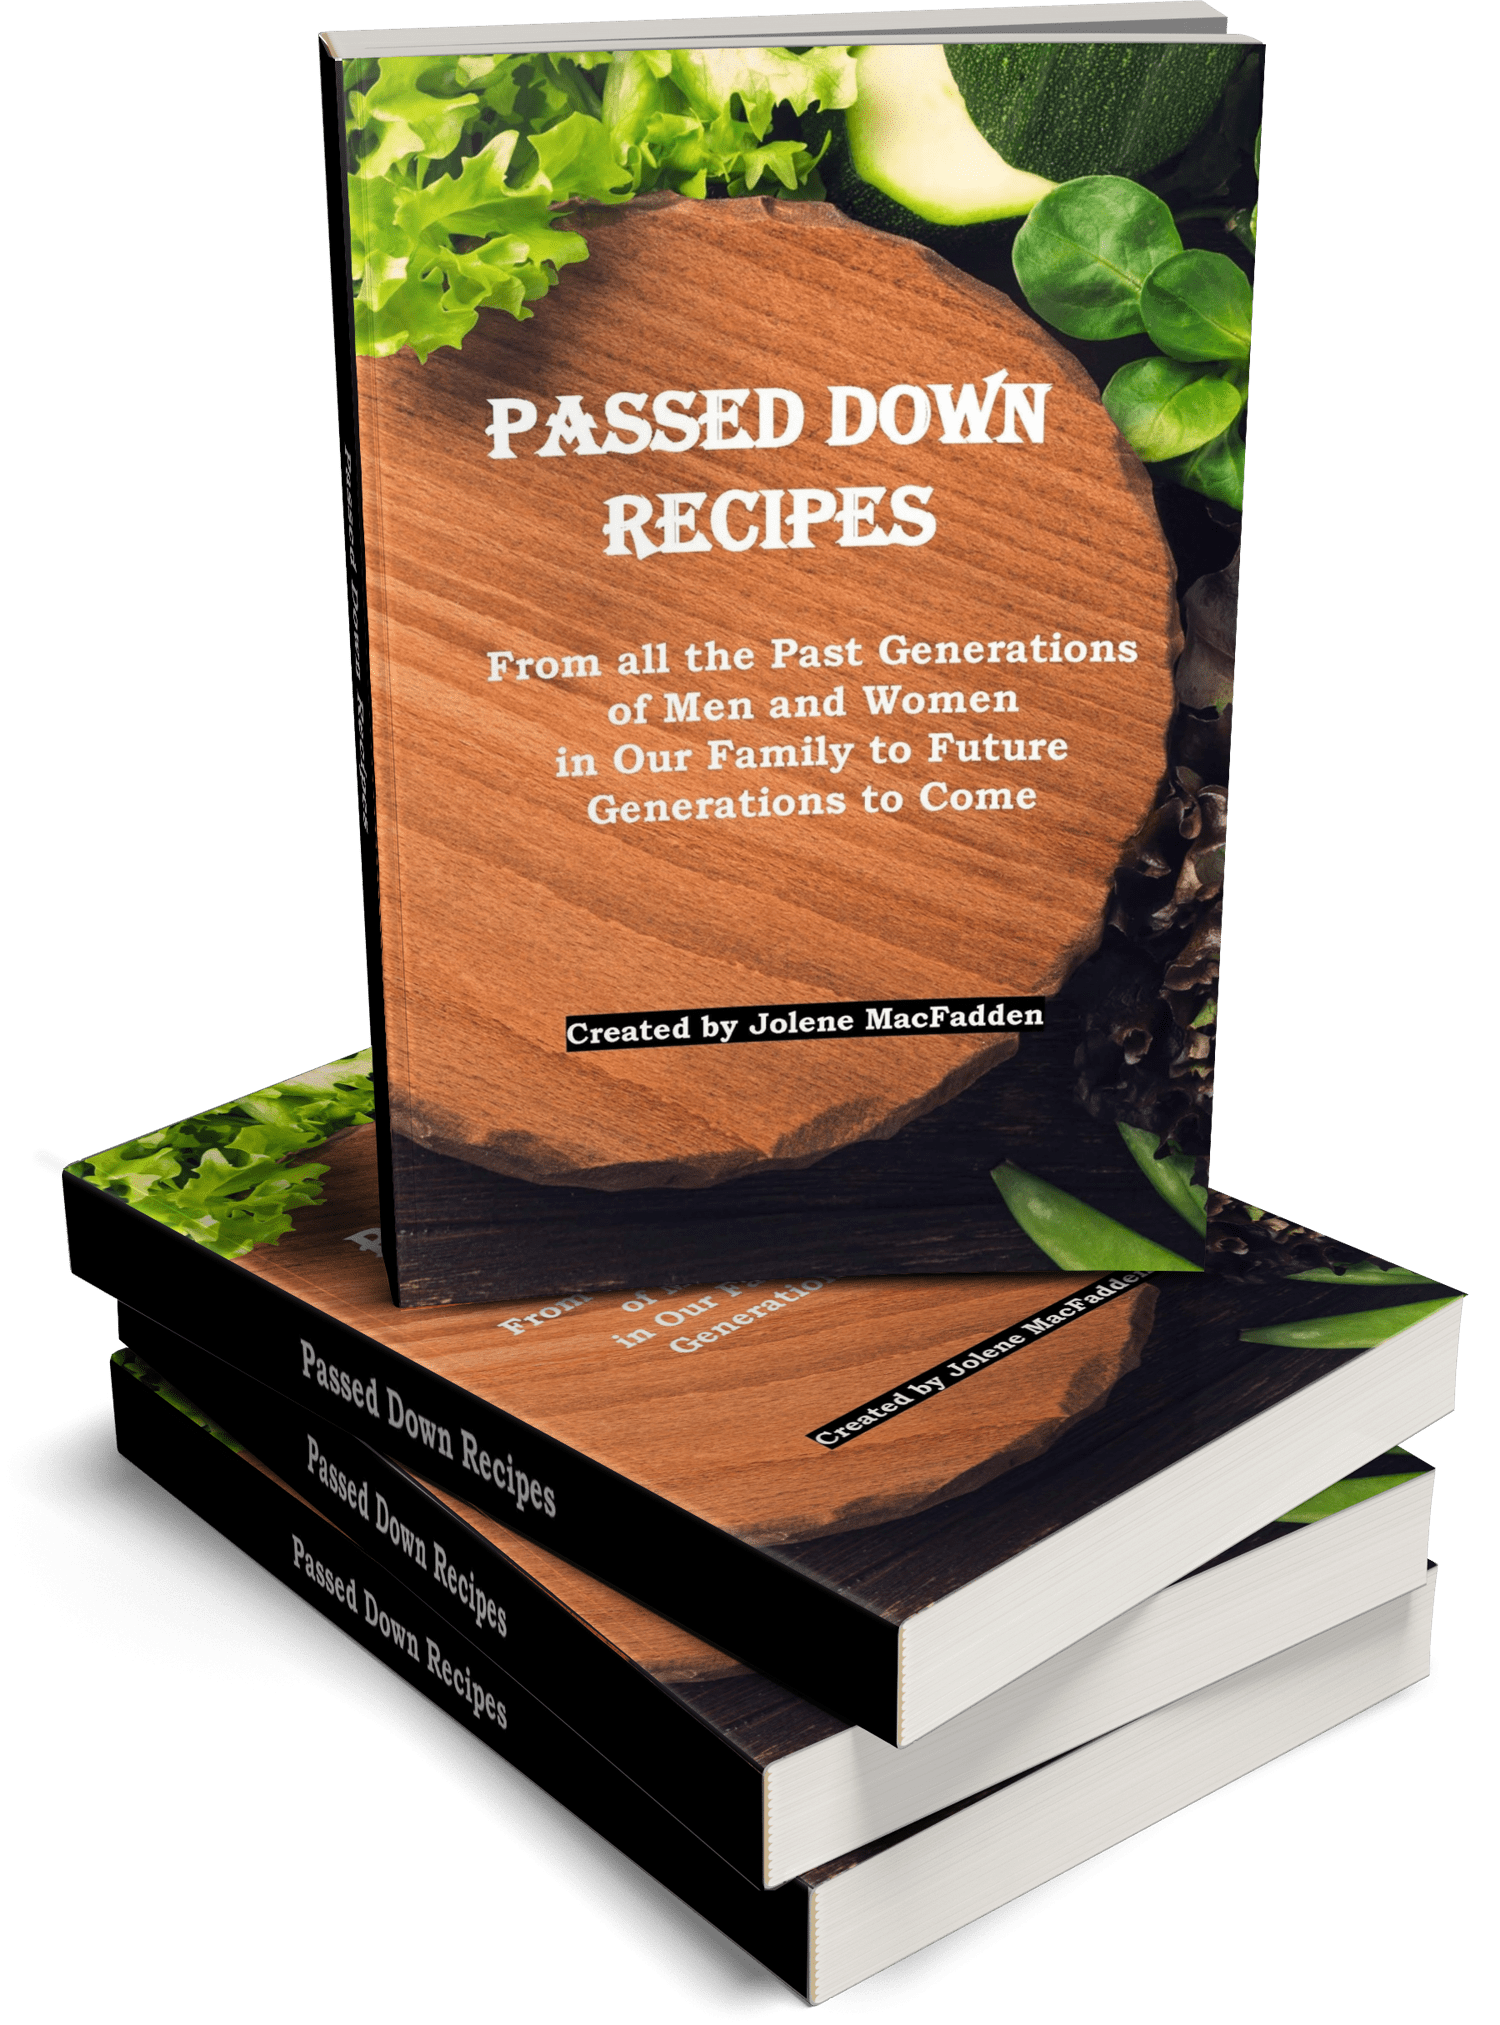 More Workbooks for Recipes and Kids Activities